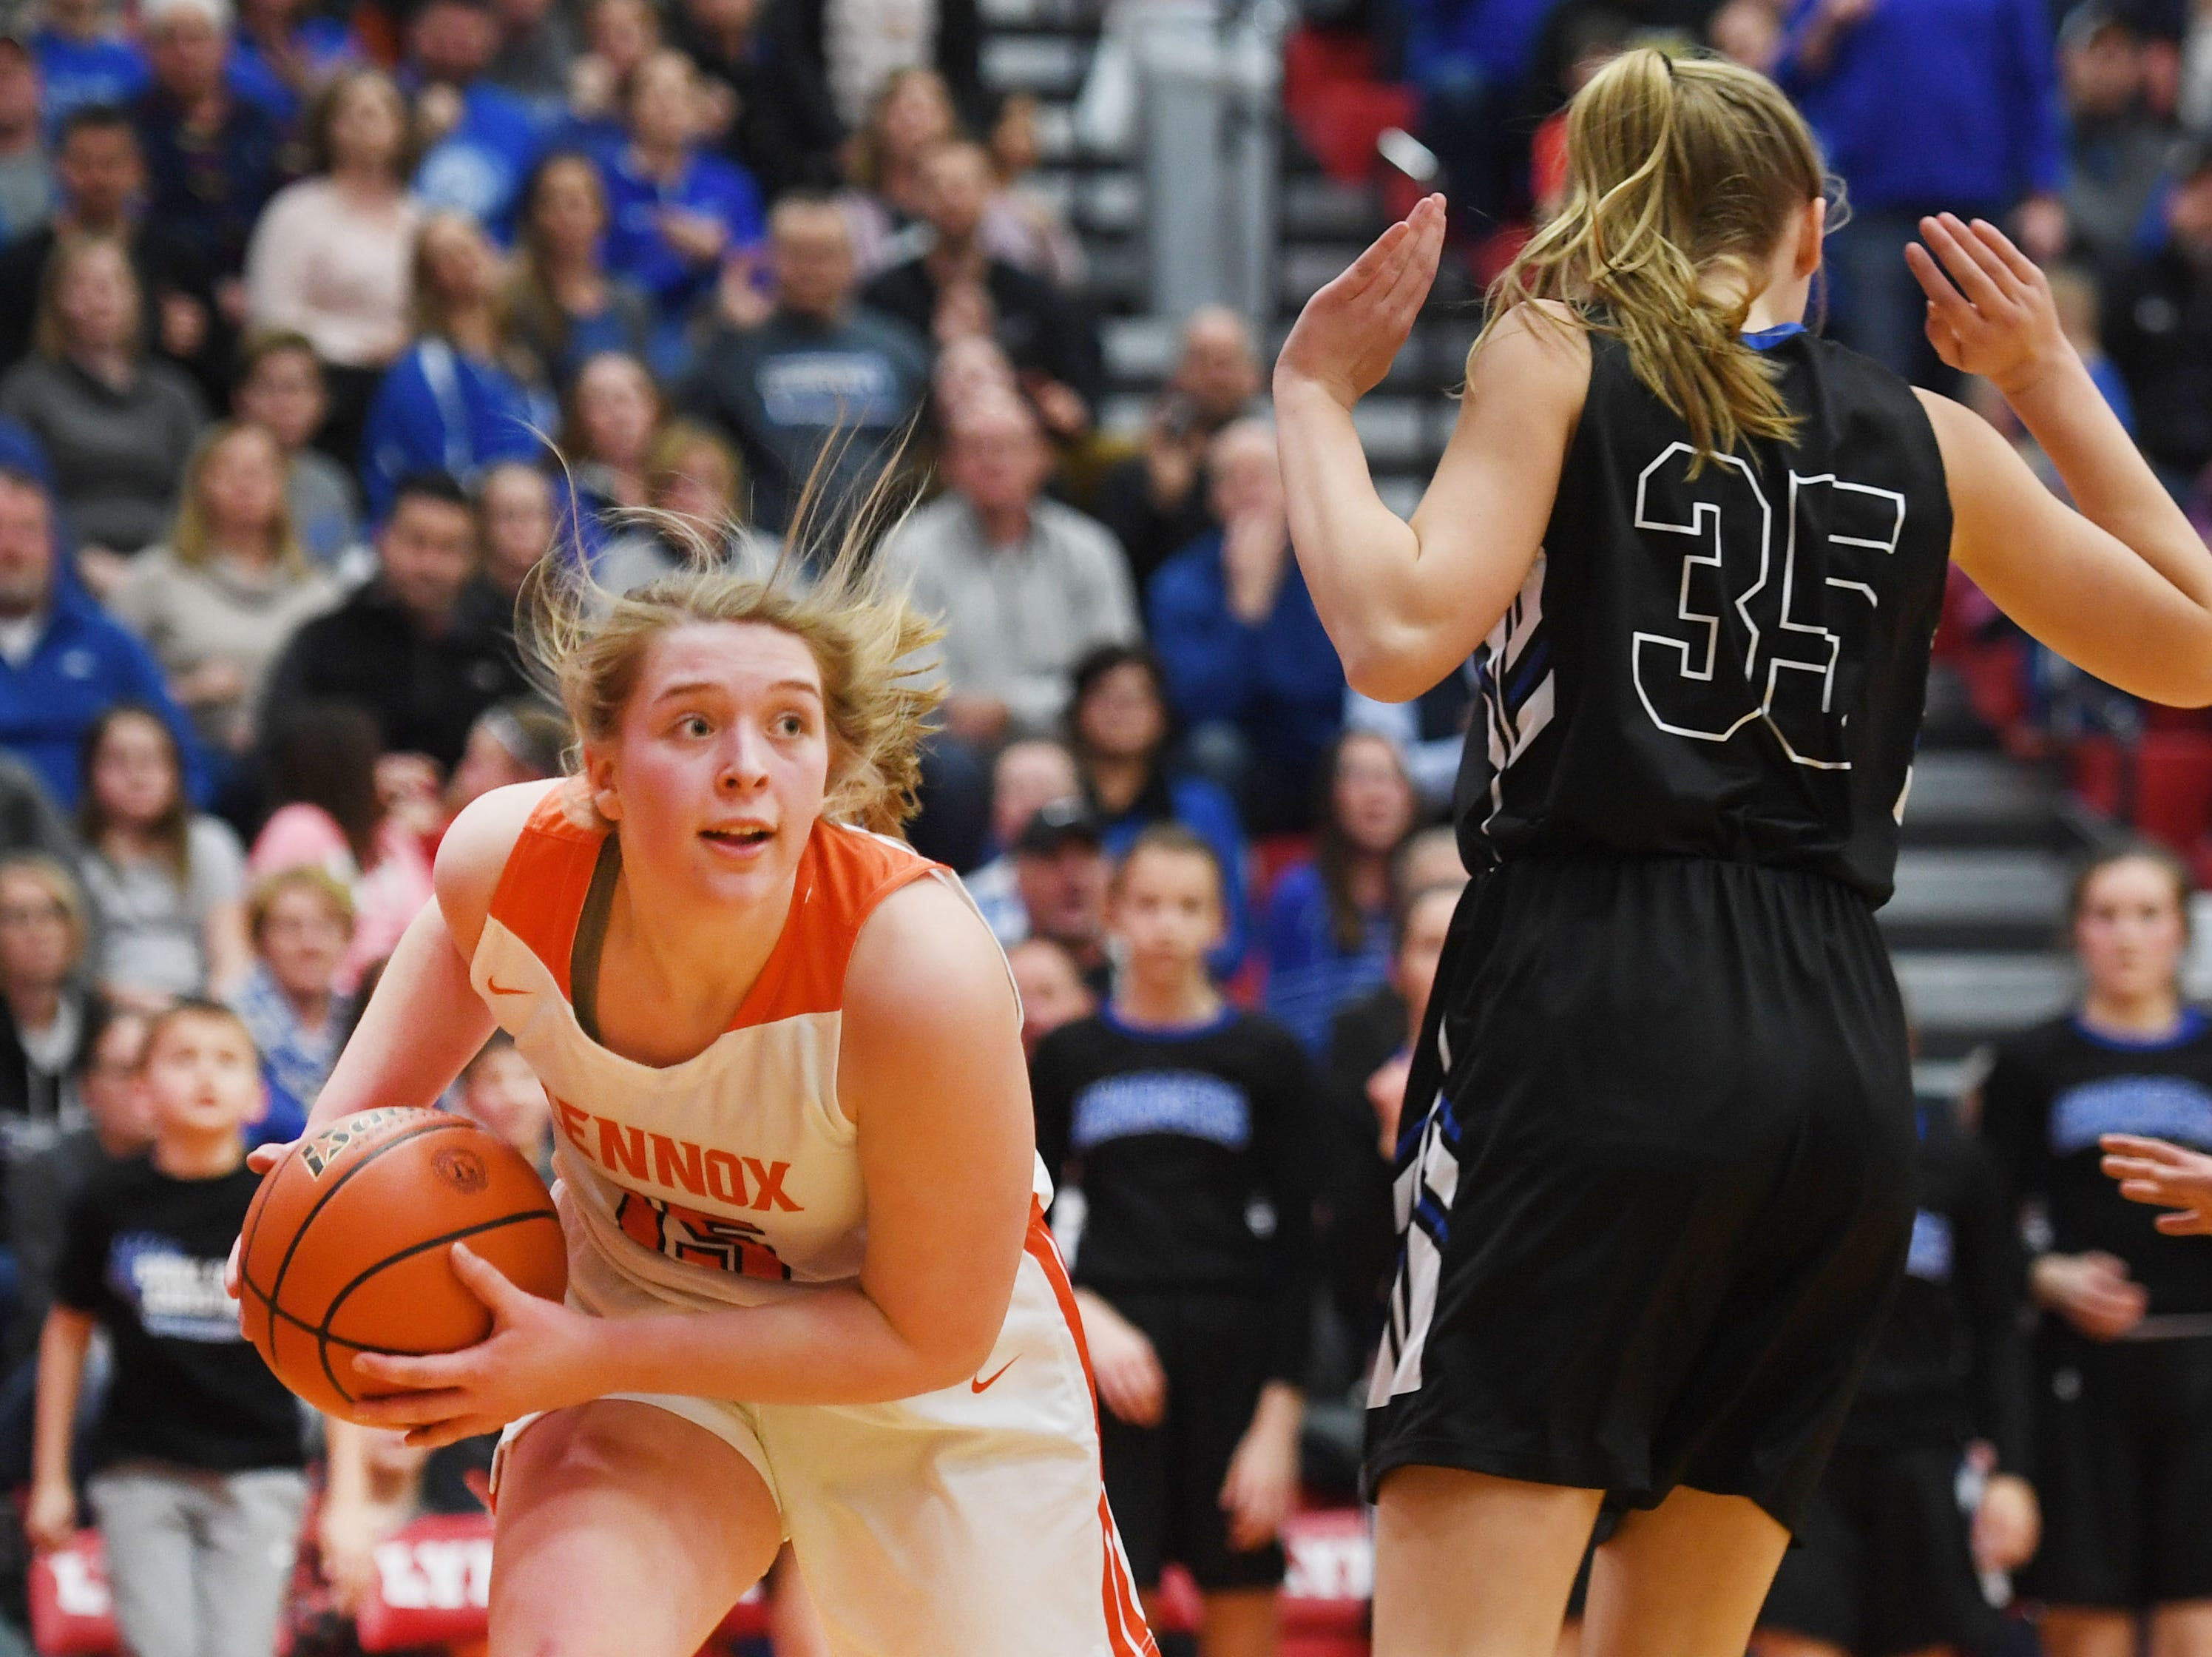 Lennox's Mara Hinker goes against Sioux Falls Christian under the net during the game Thursday, March 7, at Brandon Valley High School in Brandon Valley.